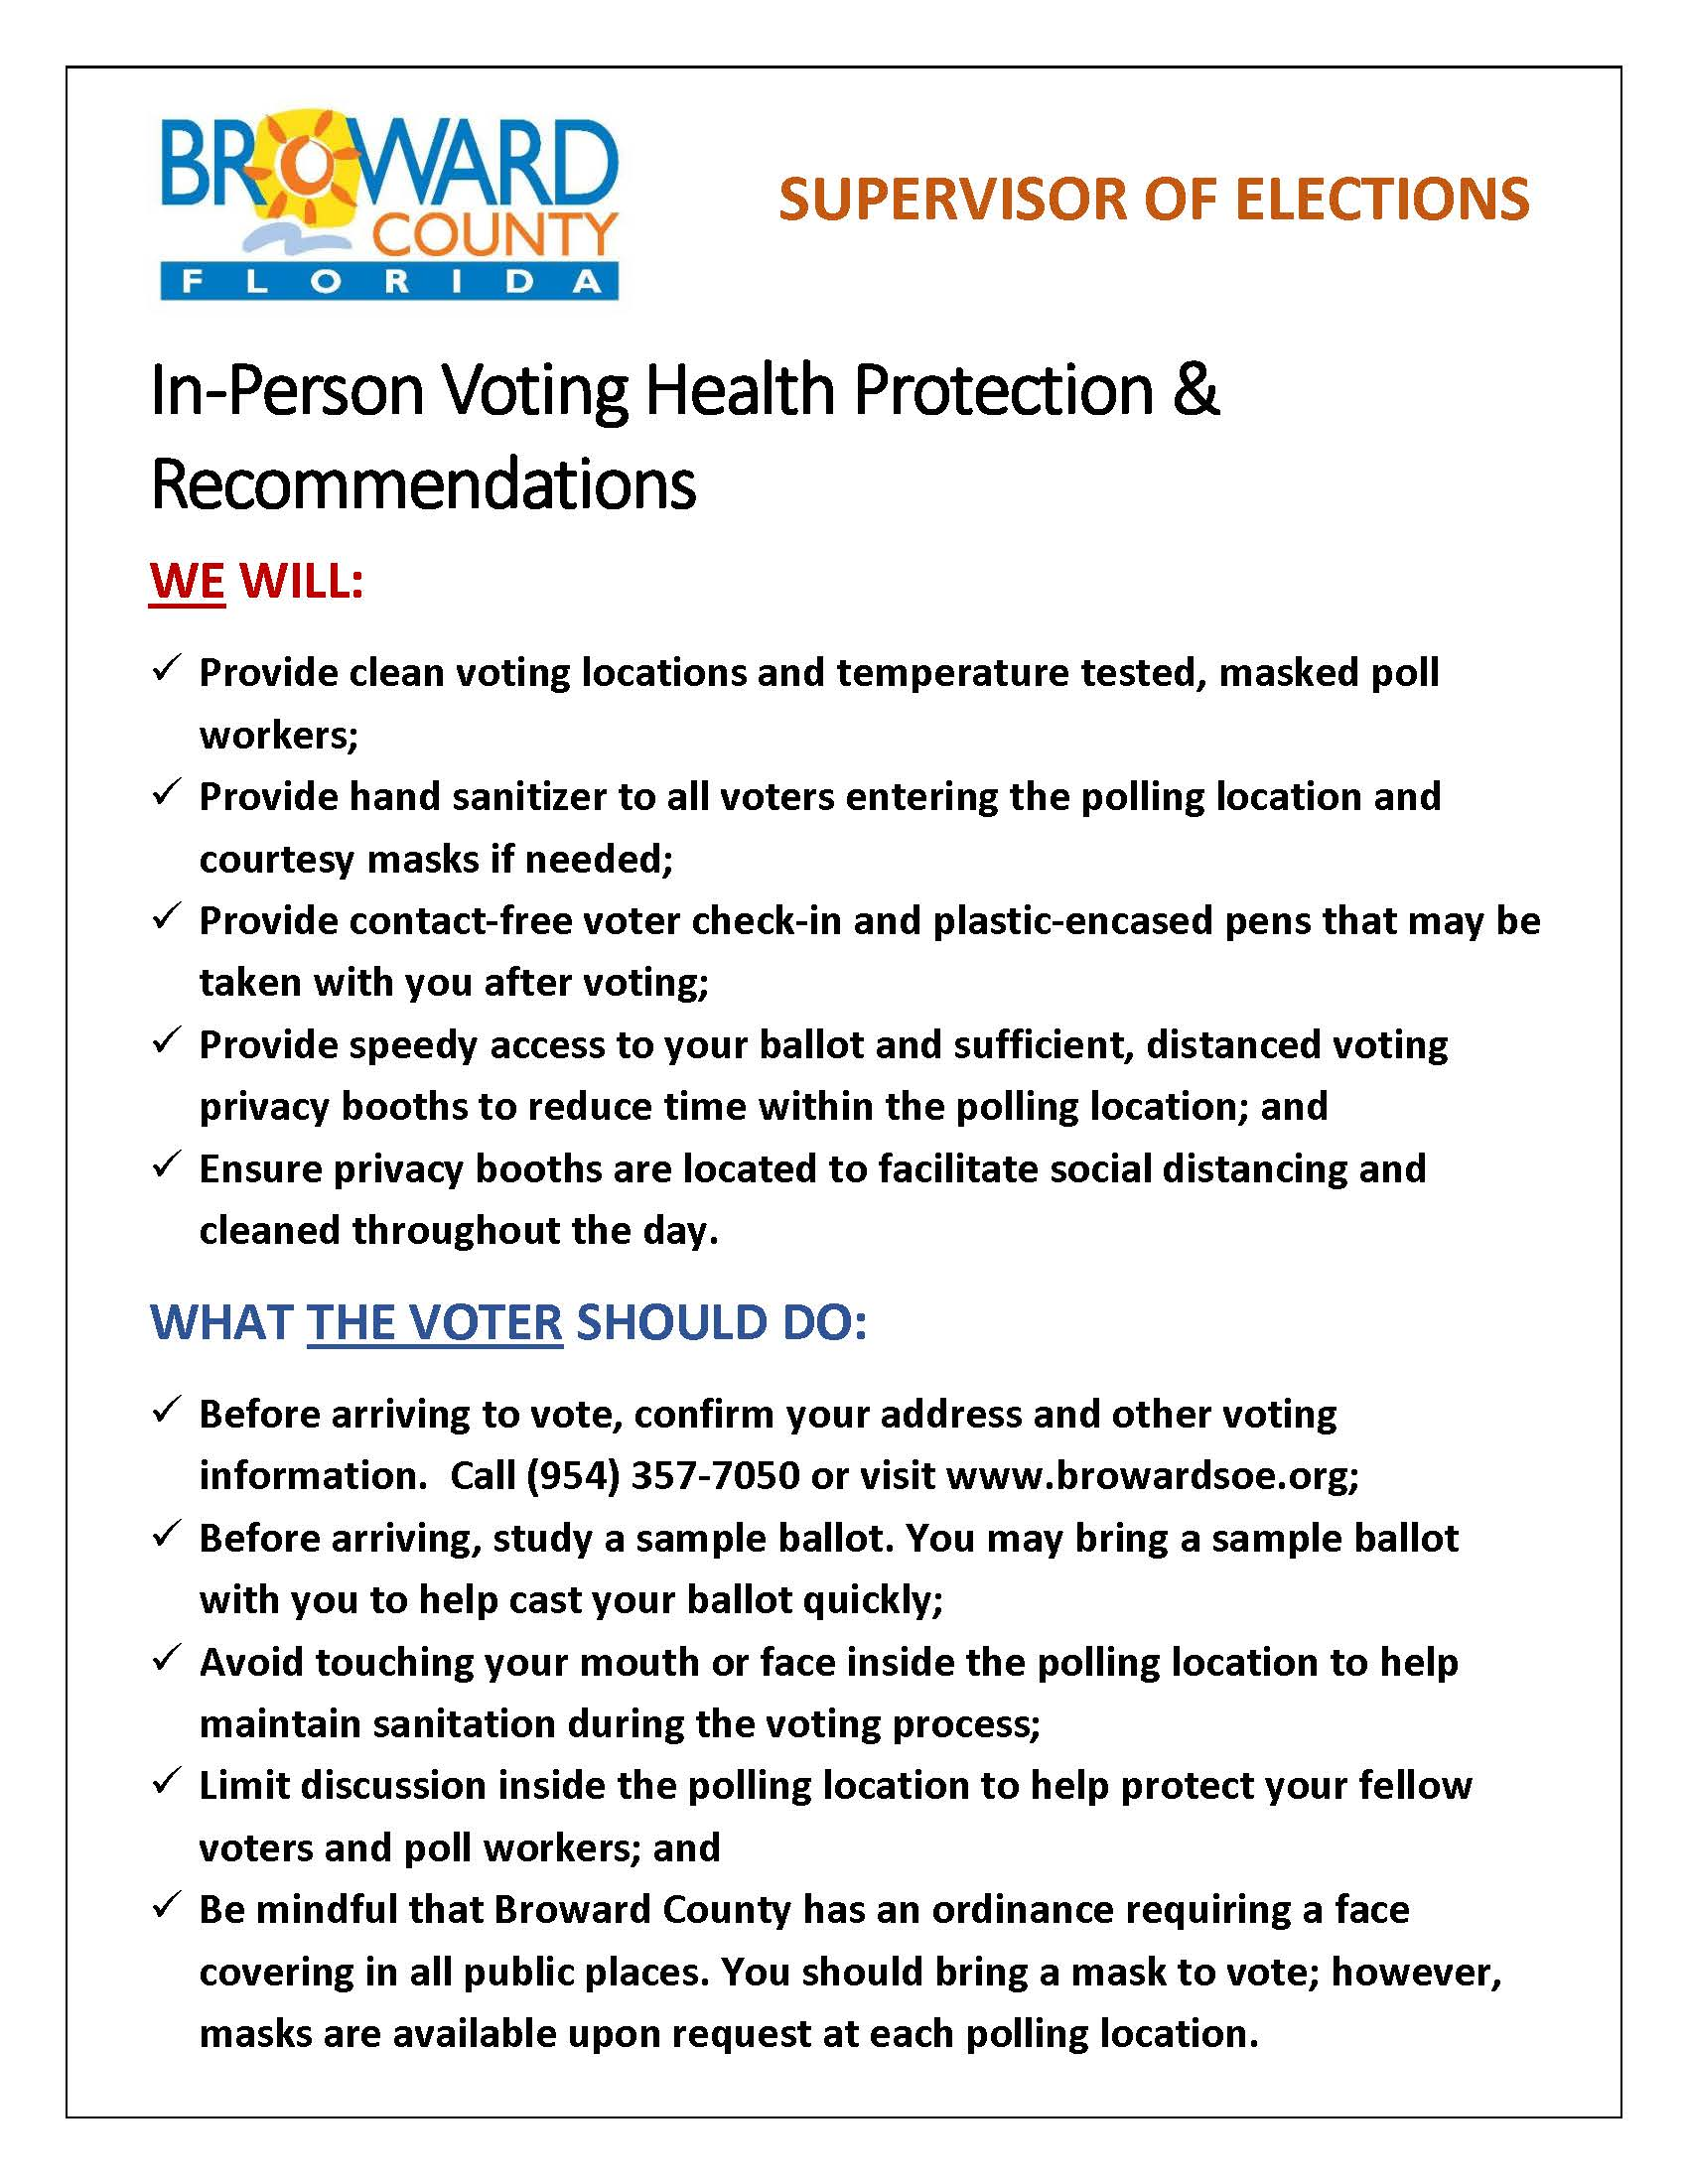 BCSOE In-Person-Voting-Health-Protection-and-Recommendations